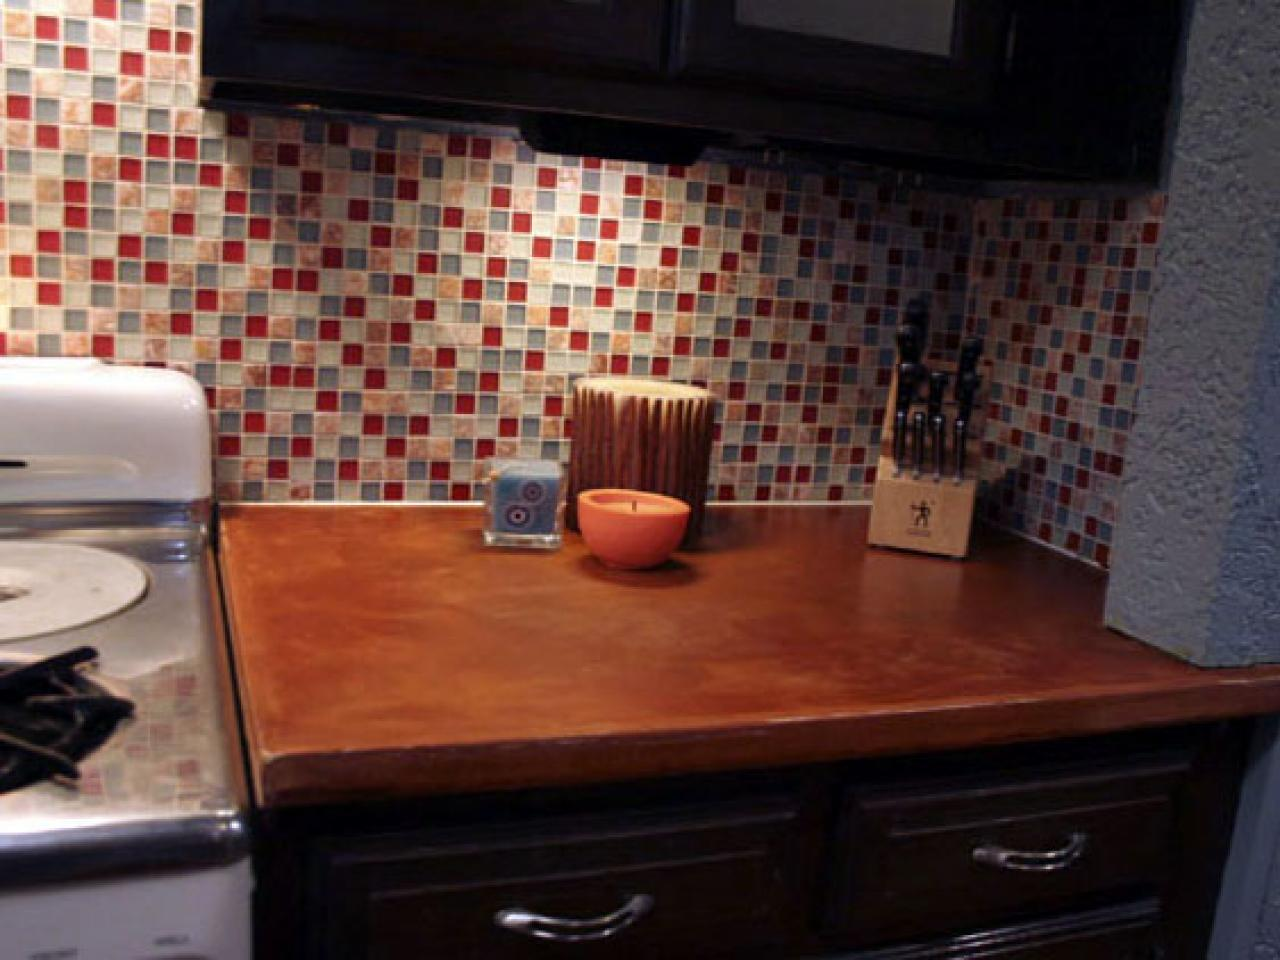 Installing a tile backsplash in your kitchen hgtv - Backsplash ideas kitchen ...